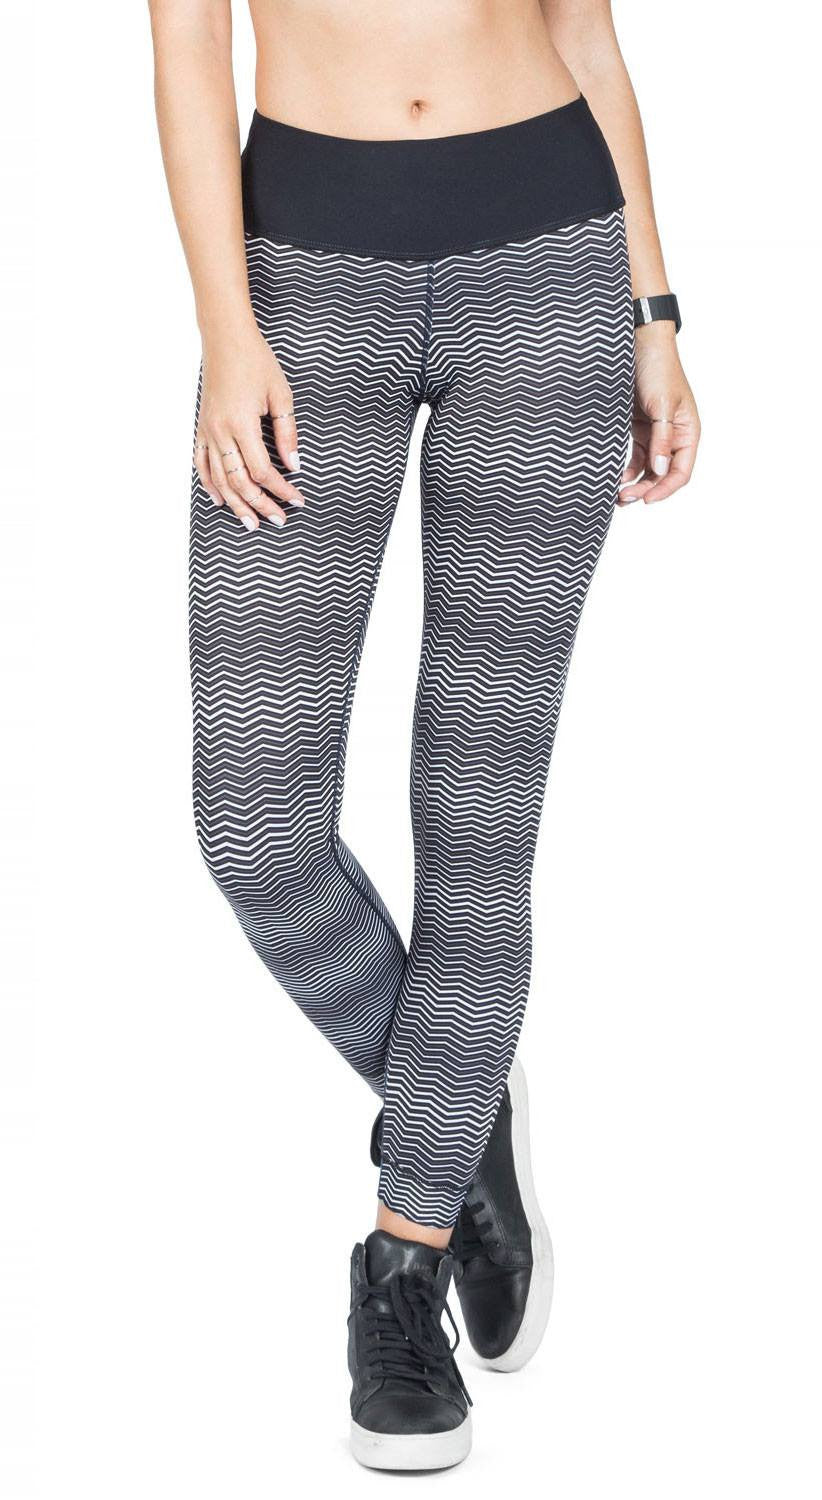 Brazilian Jegging - Reversible Washed City Denim Legging